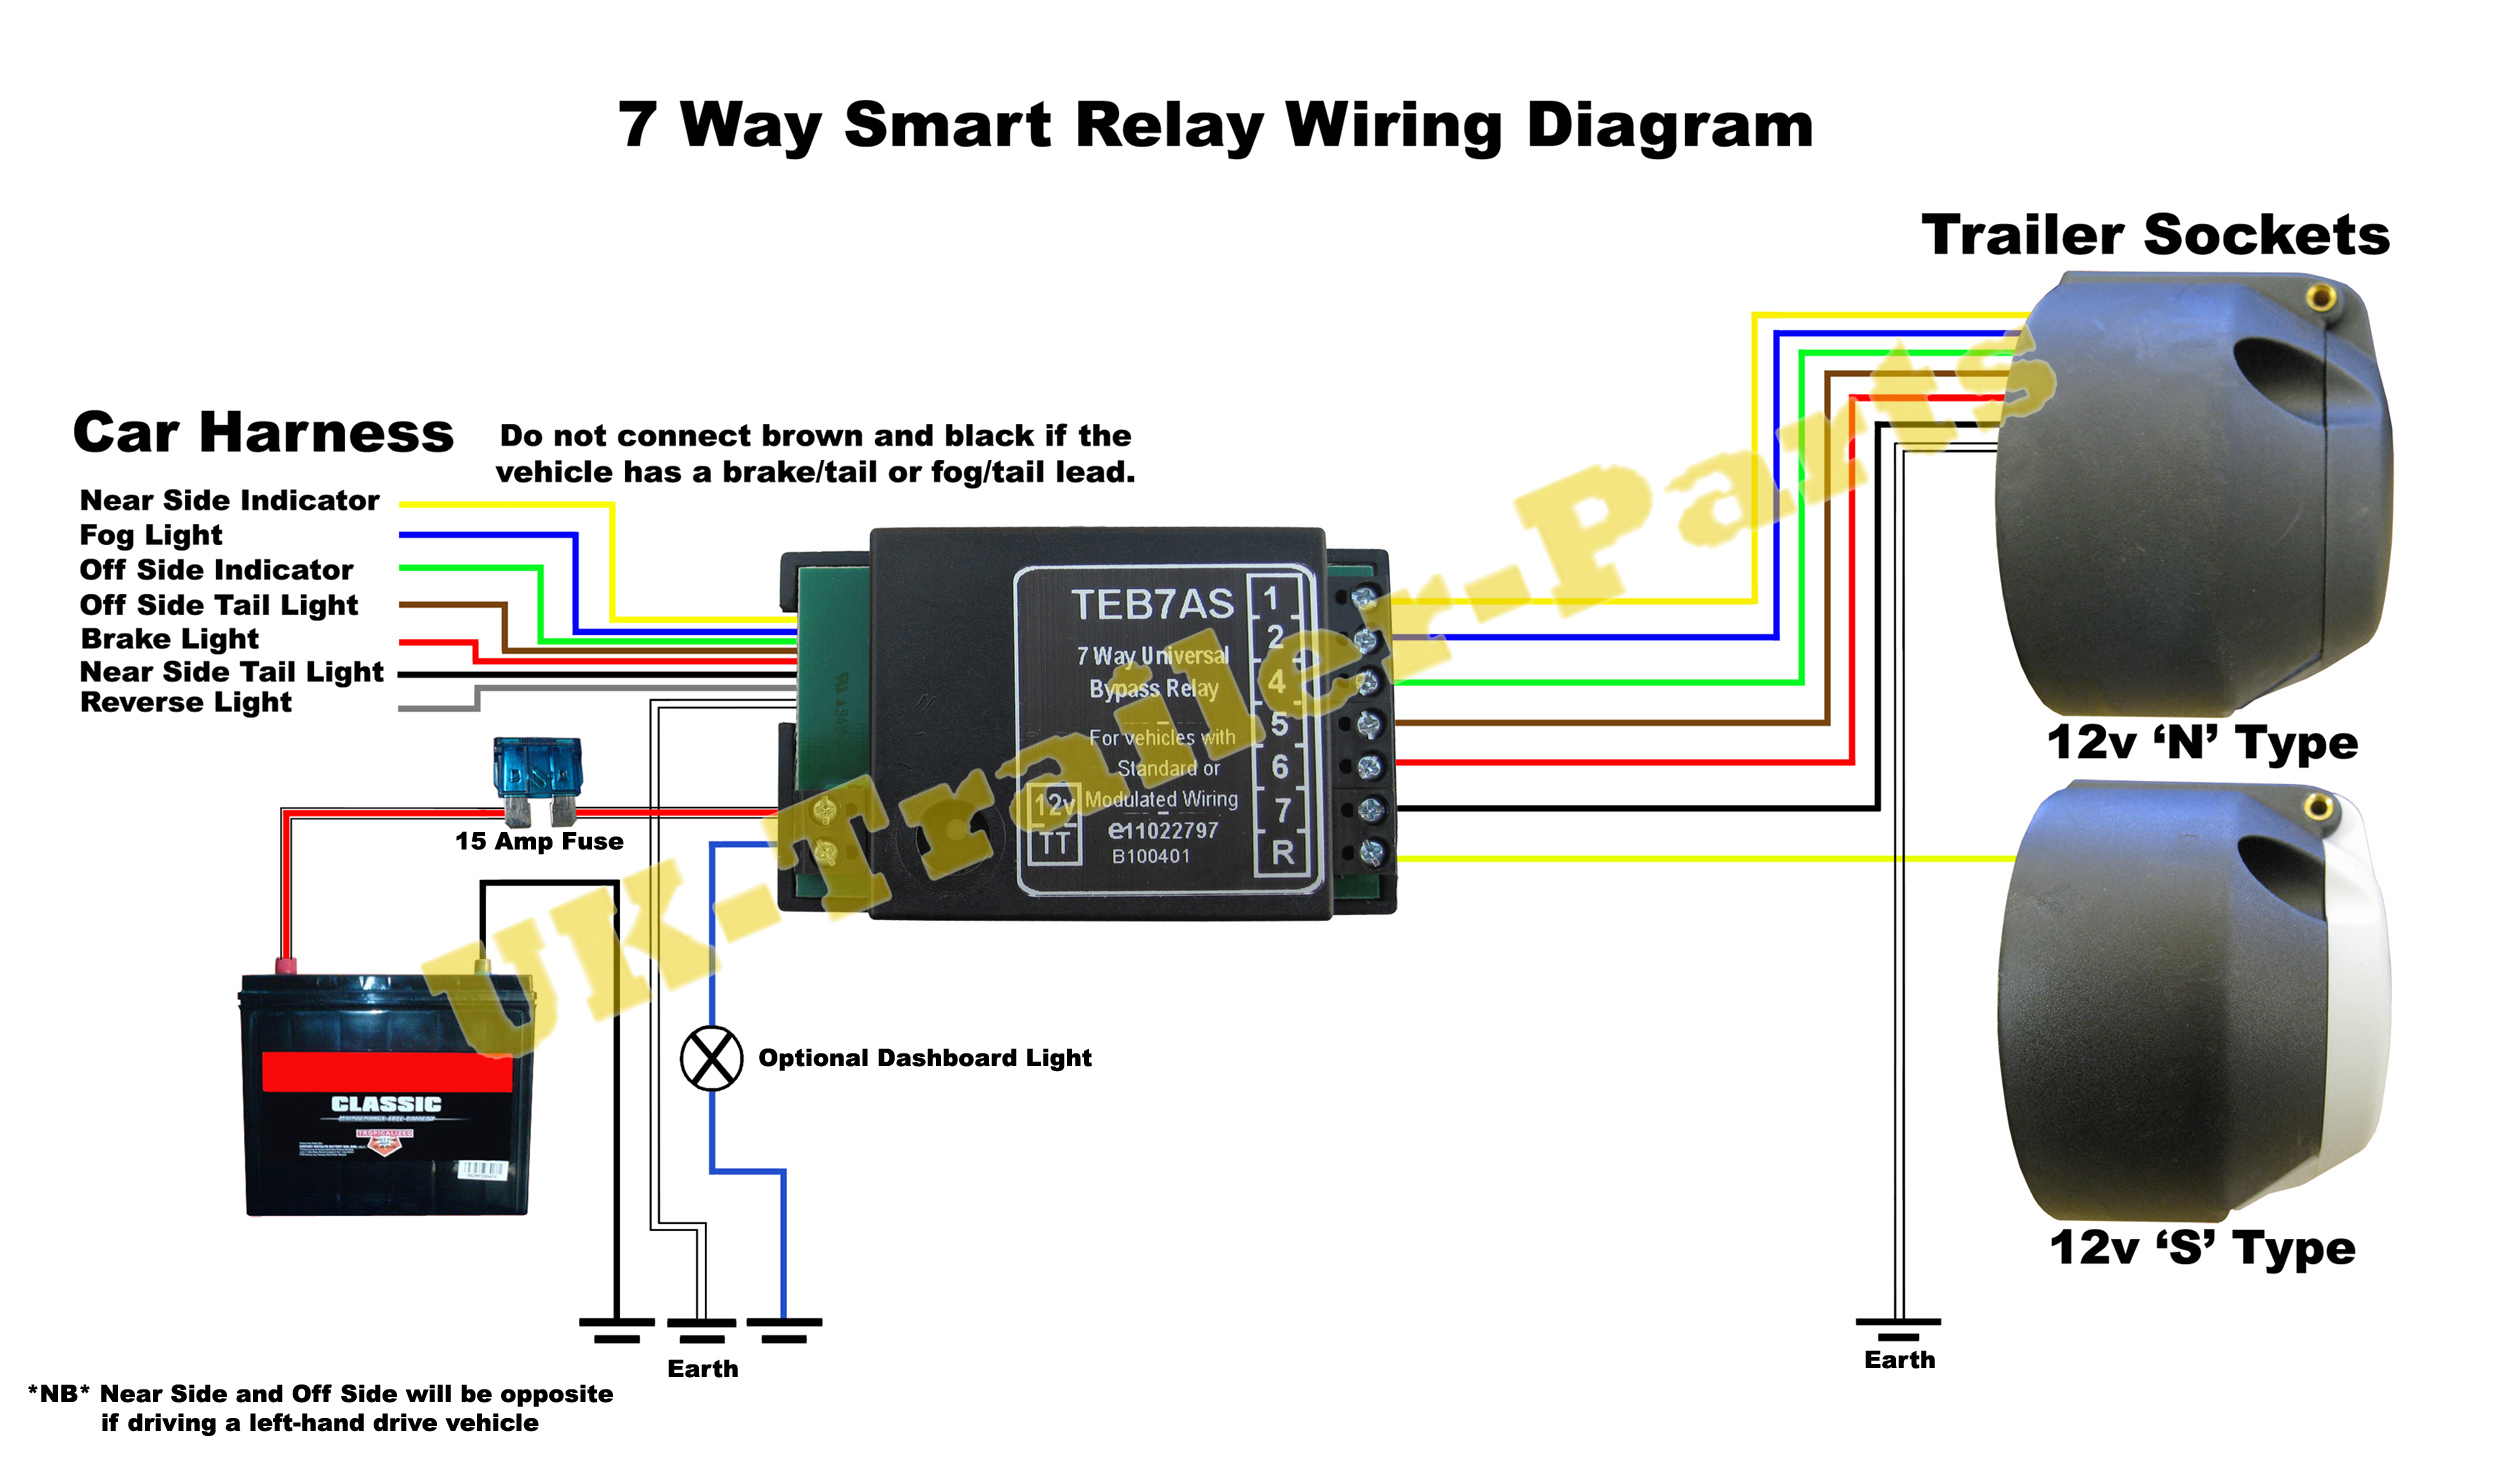 smart relay wiring diagram2 7 way universal bypass relay wiring diagram uk trailer parts suzuki jimny tow bar wiring diagram at crackthecode.co